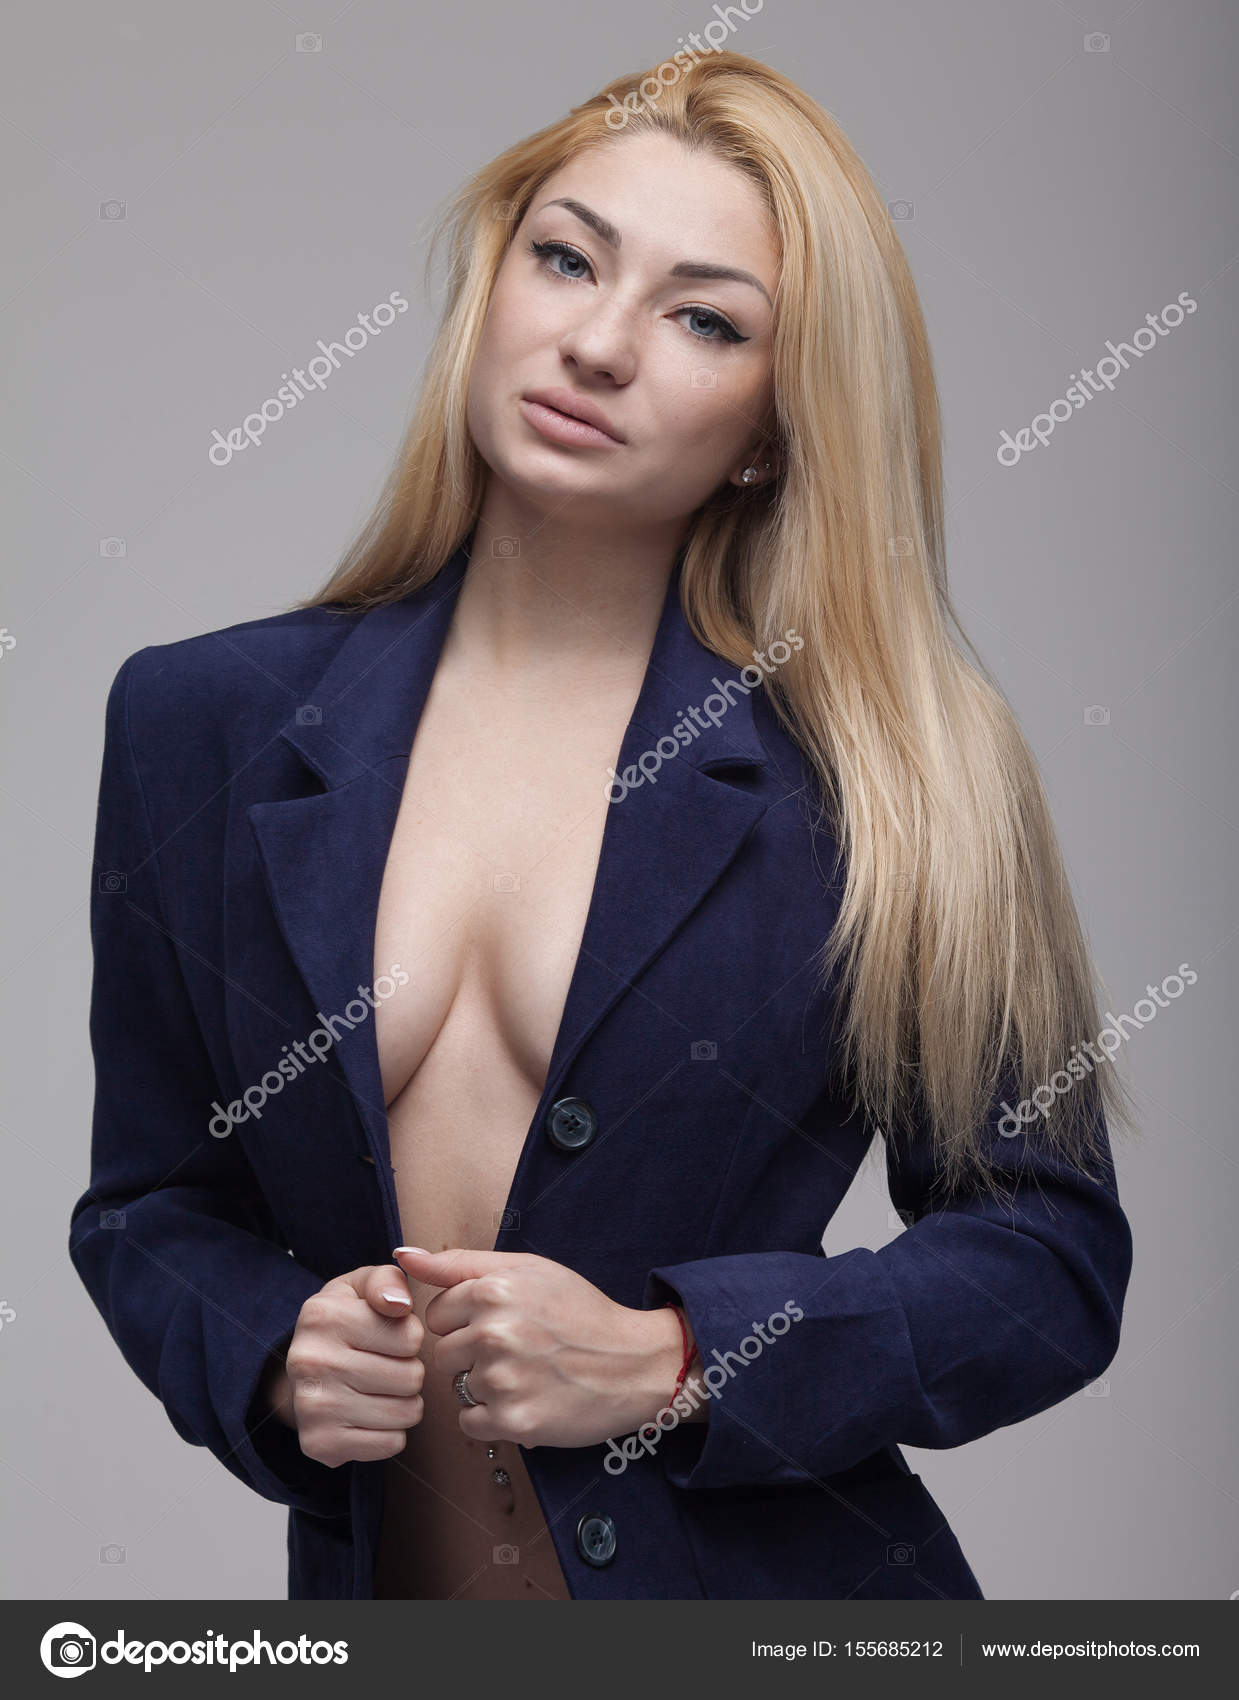 Boobs blond adult girl american